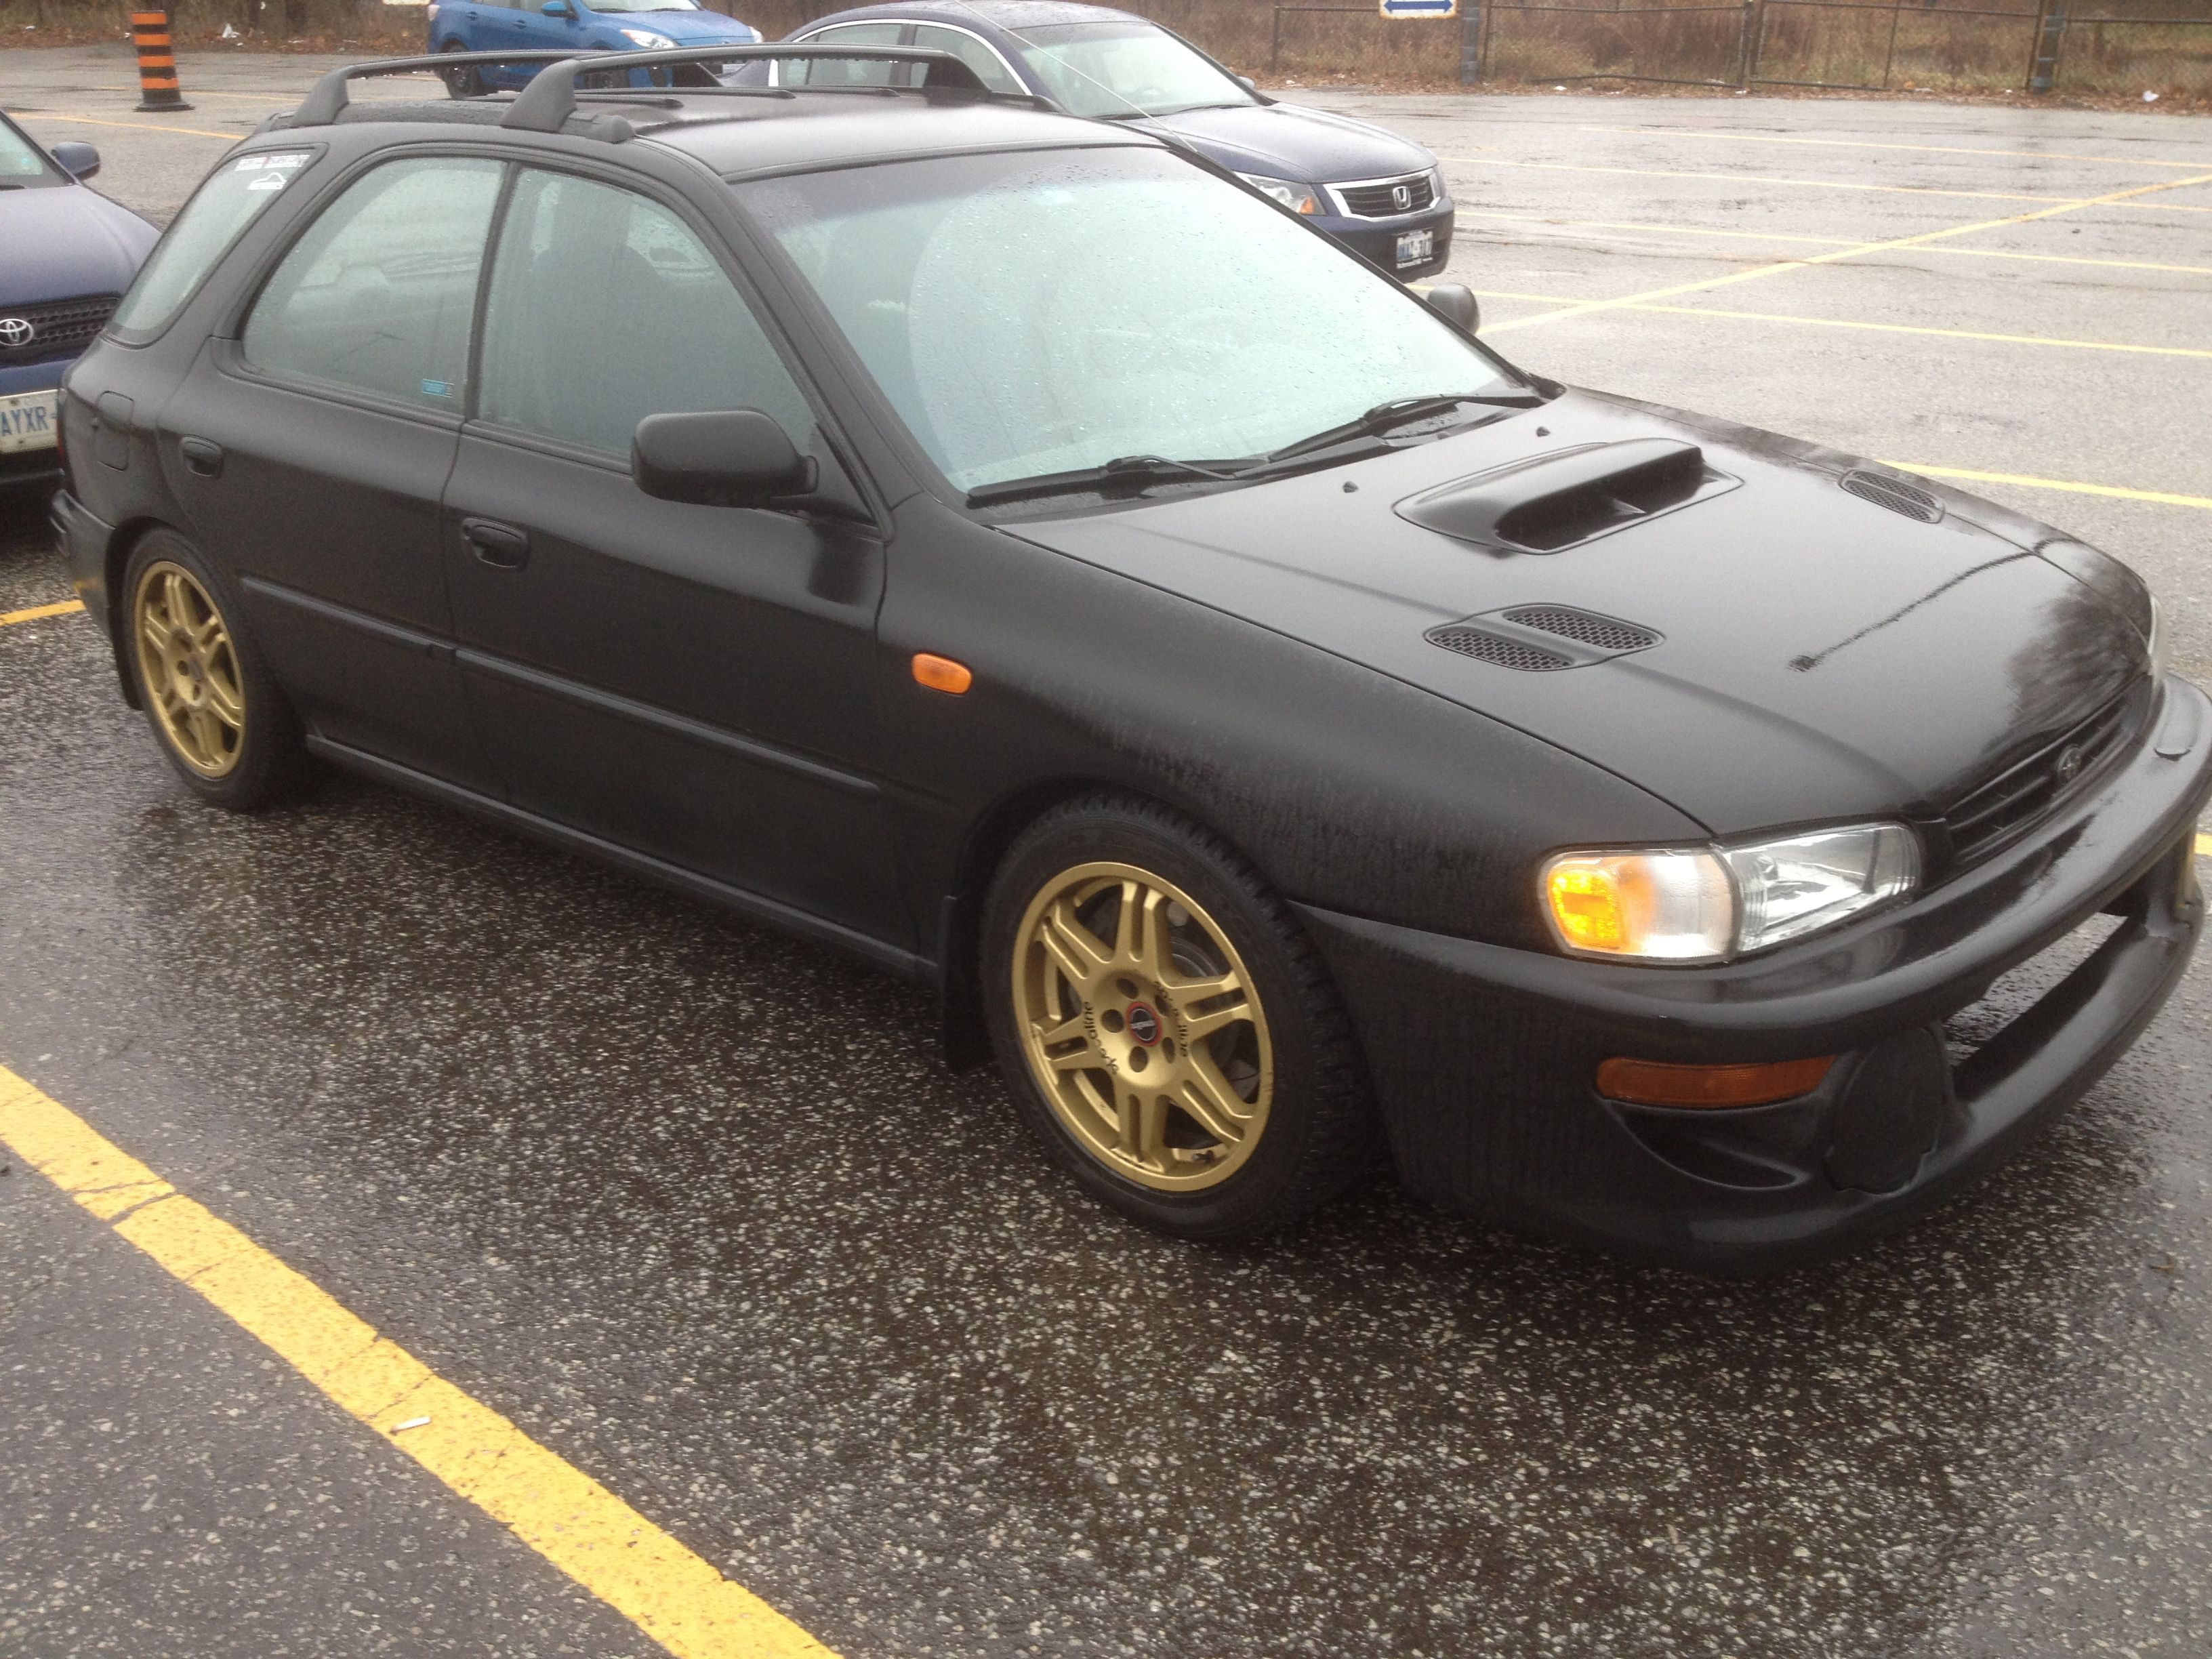 My old Subaru Outback Sport with Ver 5 swap 281whp